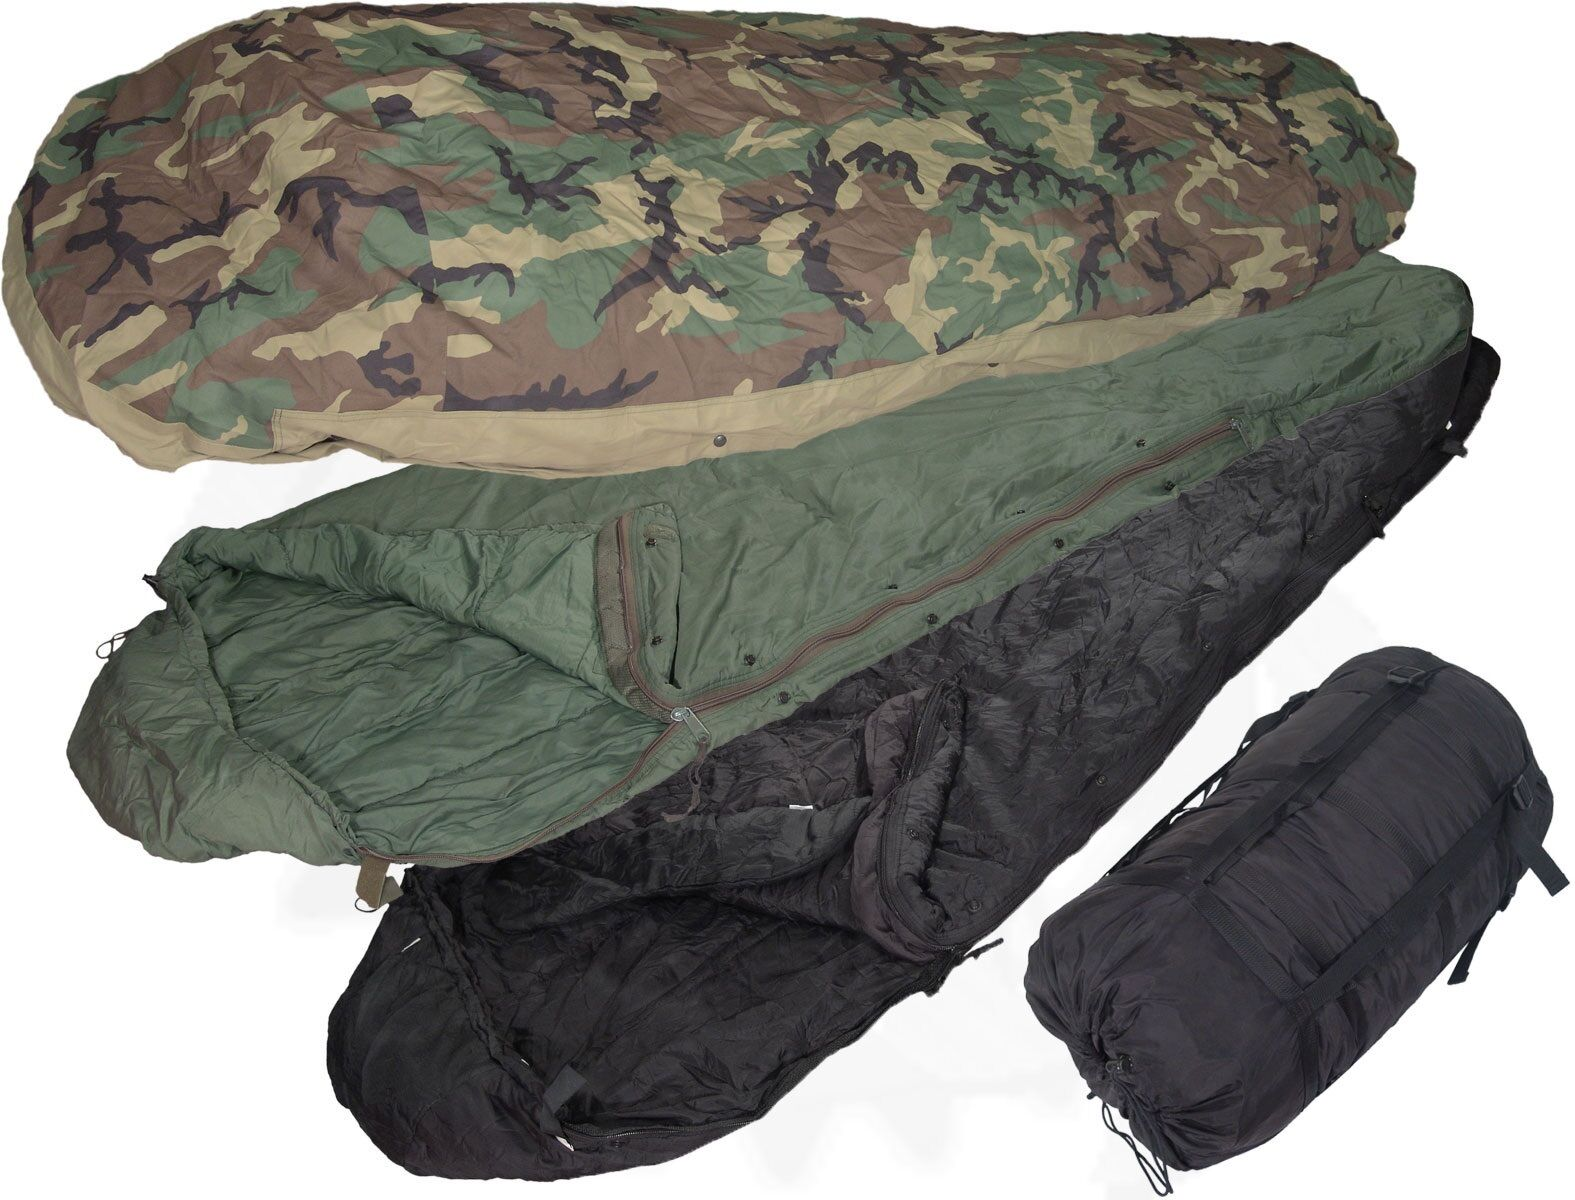 US Military 4 Piece Modular Sleeping Bag Sleep System   Used condition Needs TLC